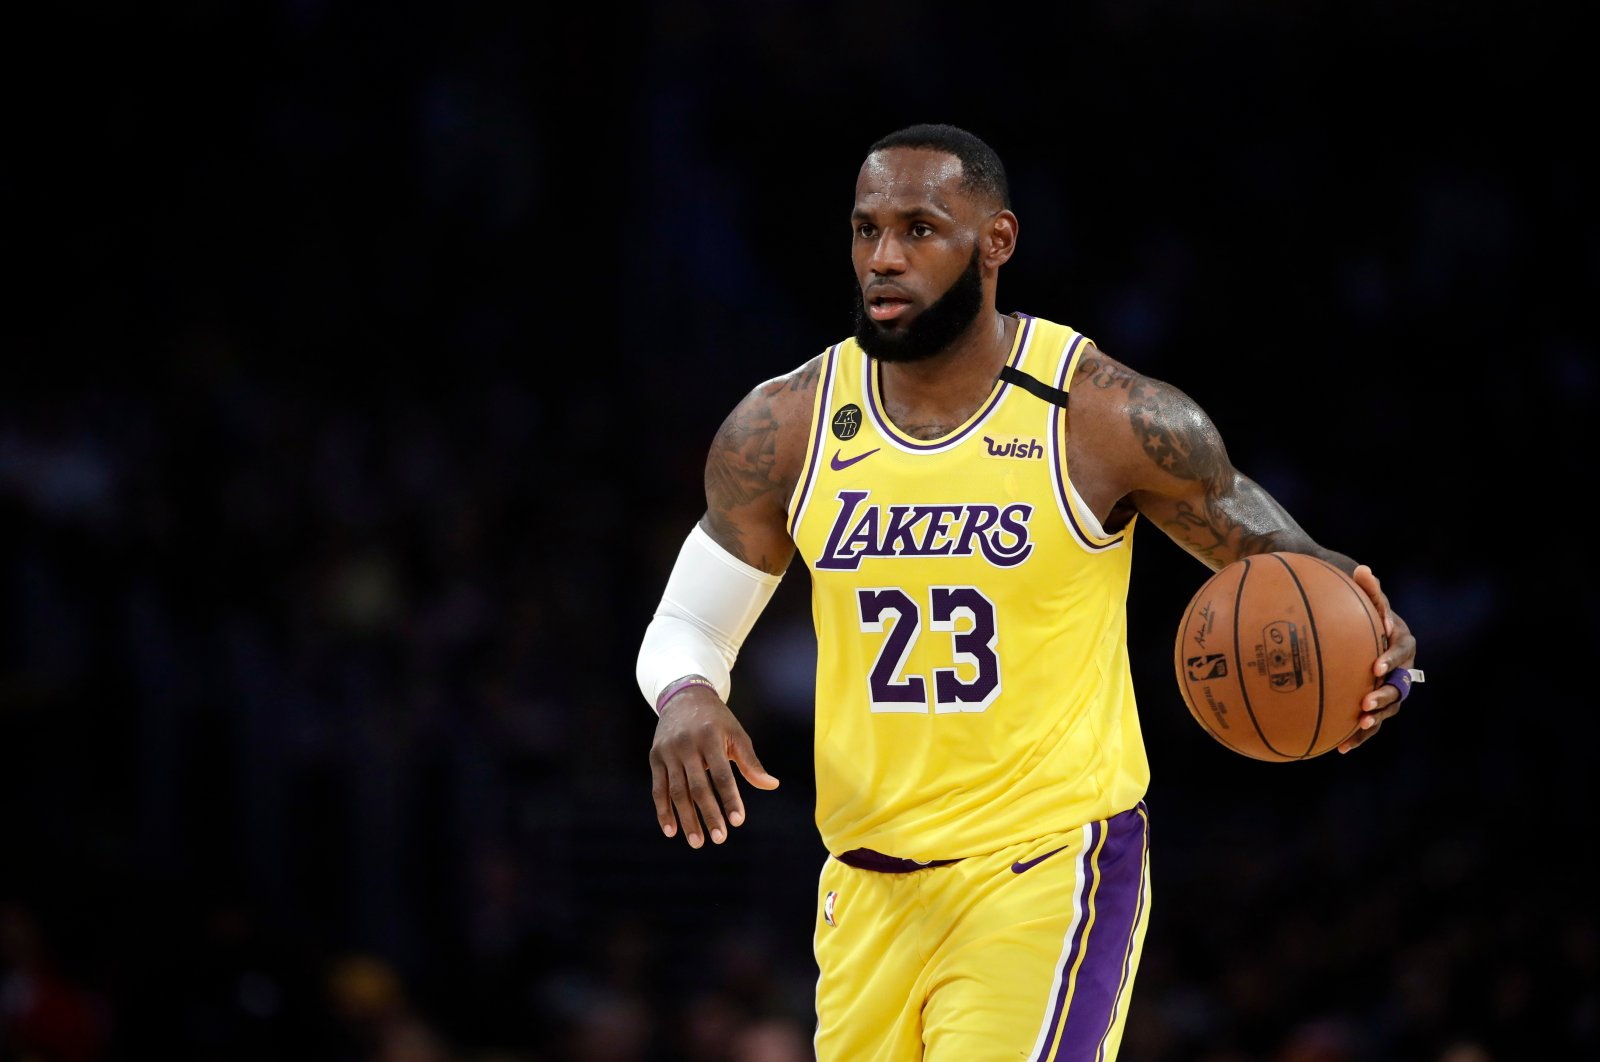 Los Angeles Lakers' LeBron James (23) dribbles during the first half of an NBA basketball game against the Brooklyn Nets in Los Angeles, California, U.S., March 10, 2020. (AP Photo)